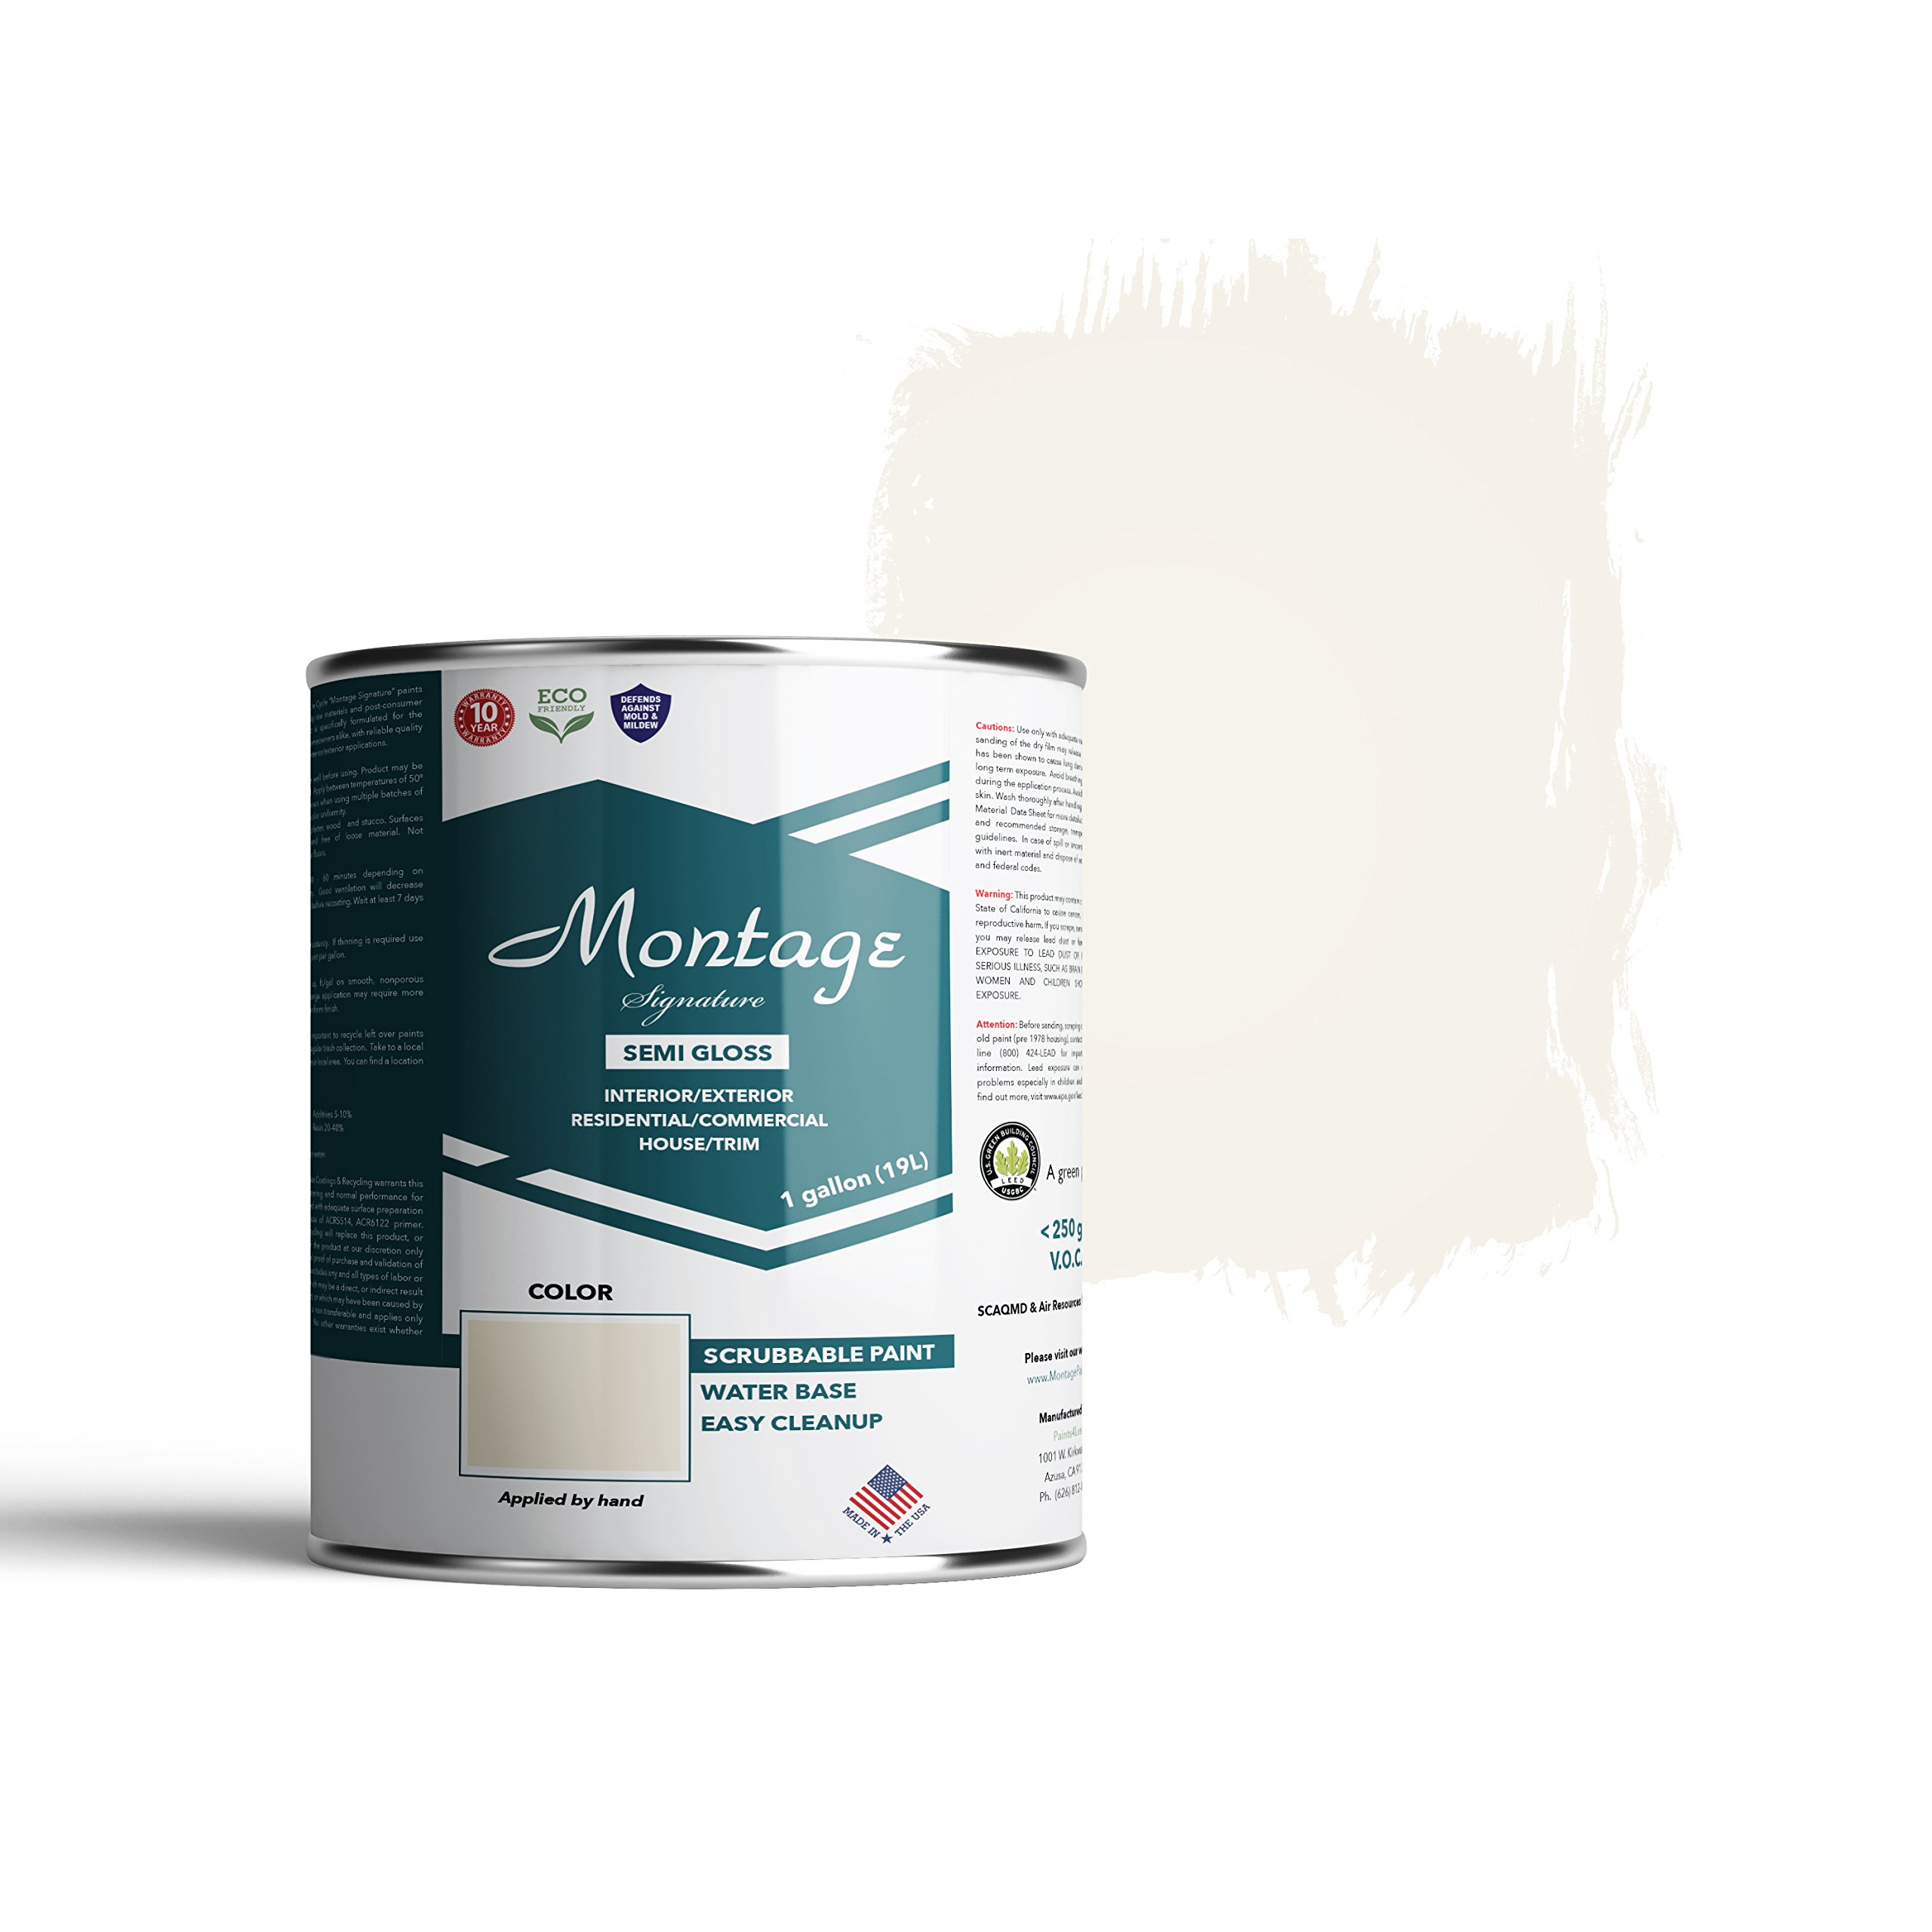 Montage Signature Interior/Exterior Eco-Friendly Paint, Snow White - Semi-Gloss, 1 Gallon